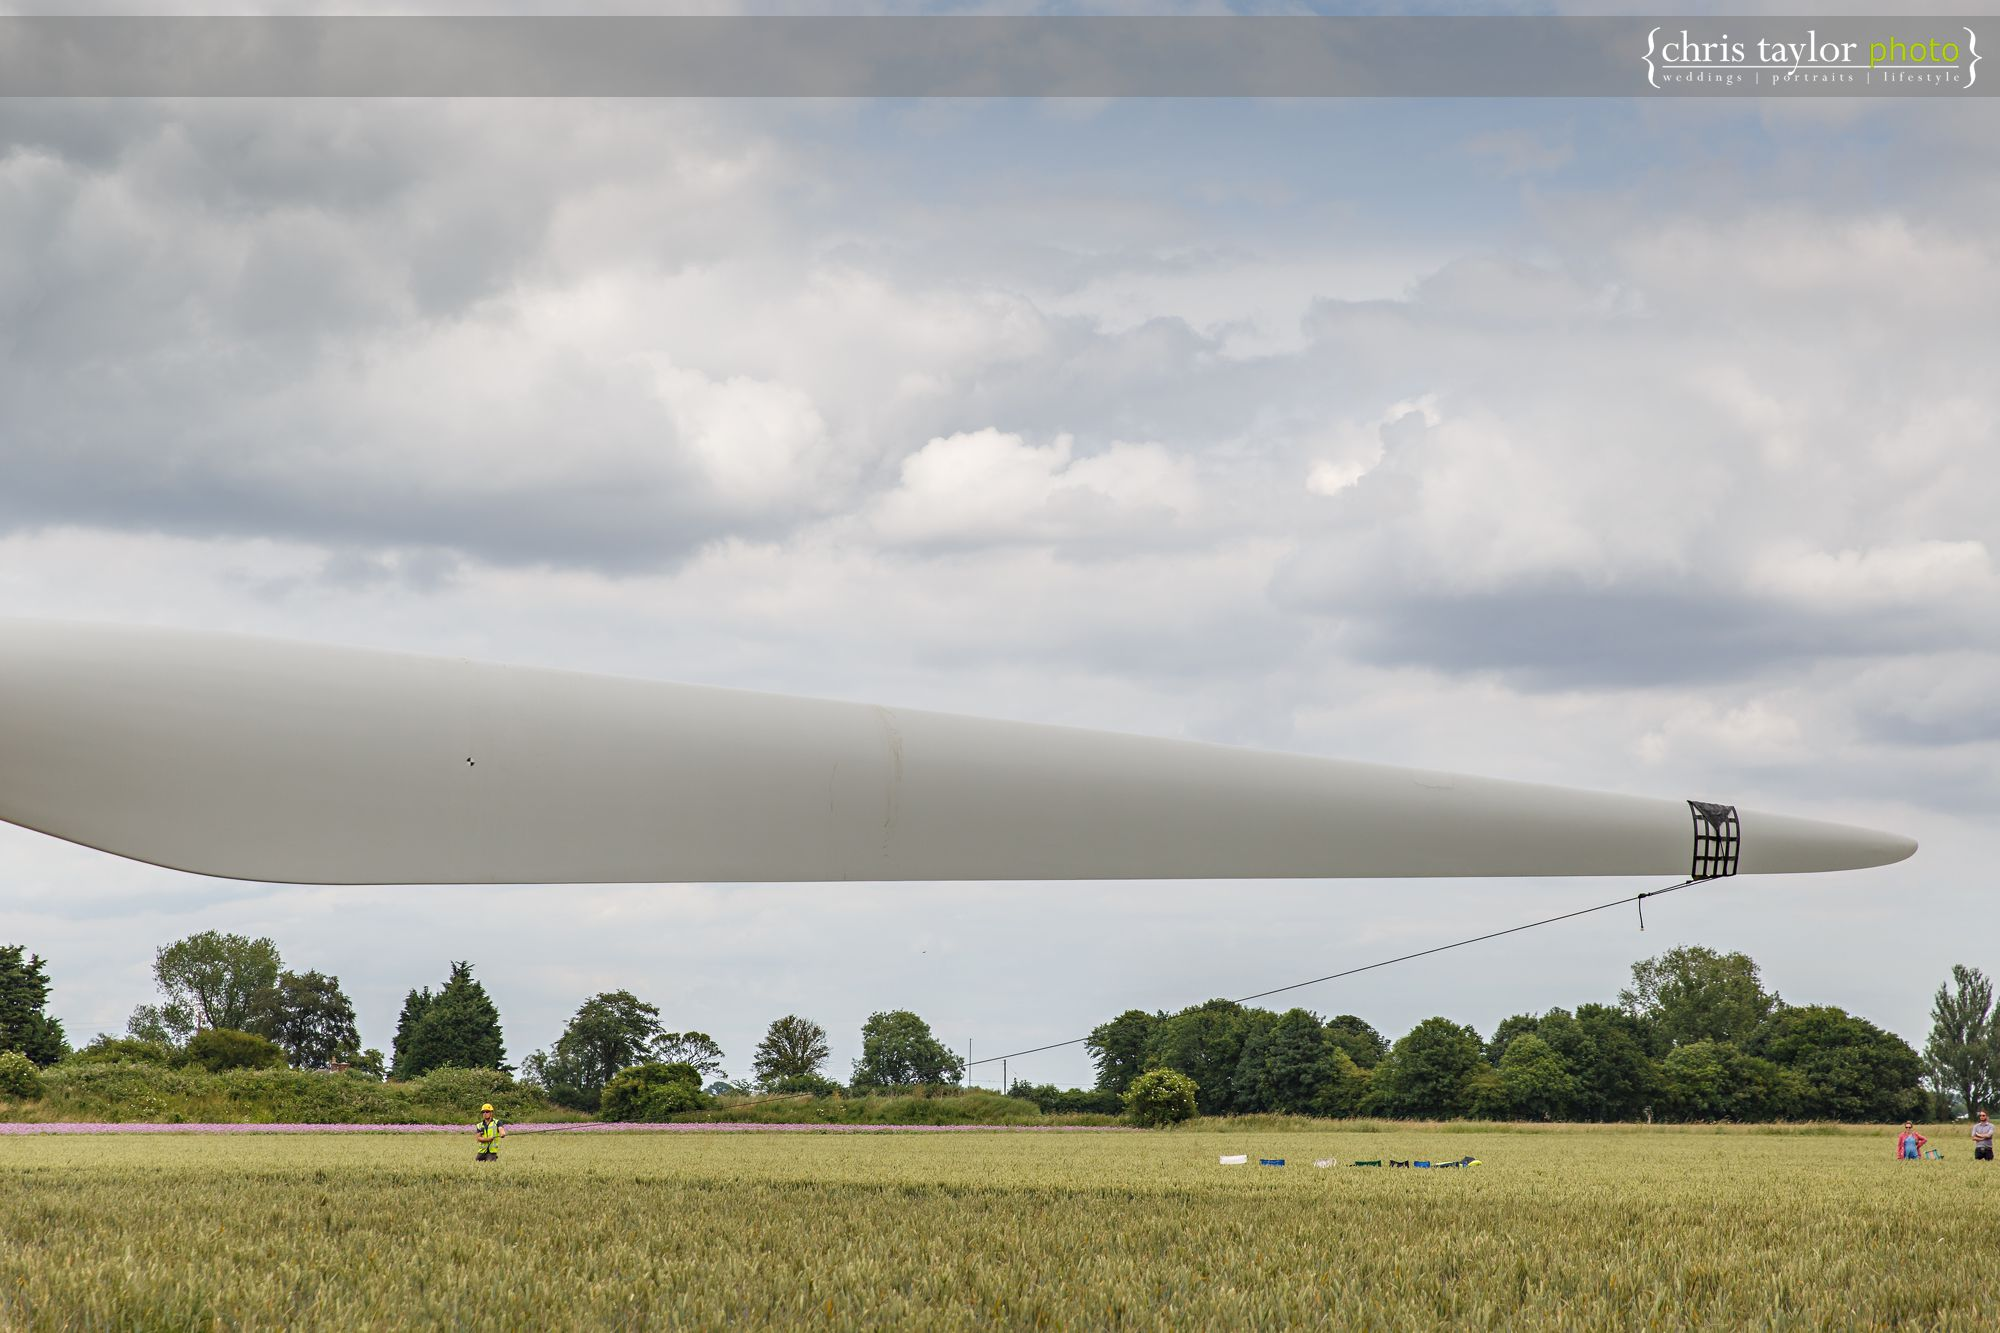 1-wind-turbine-photography-007